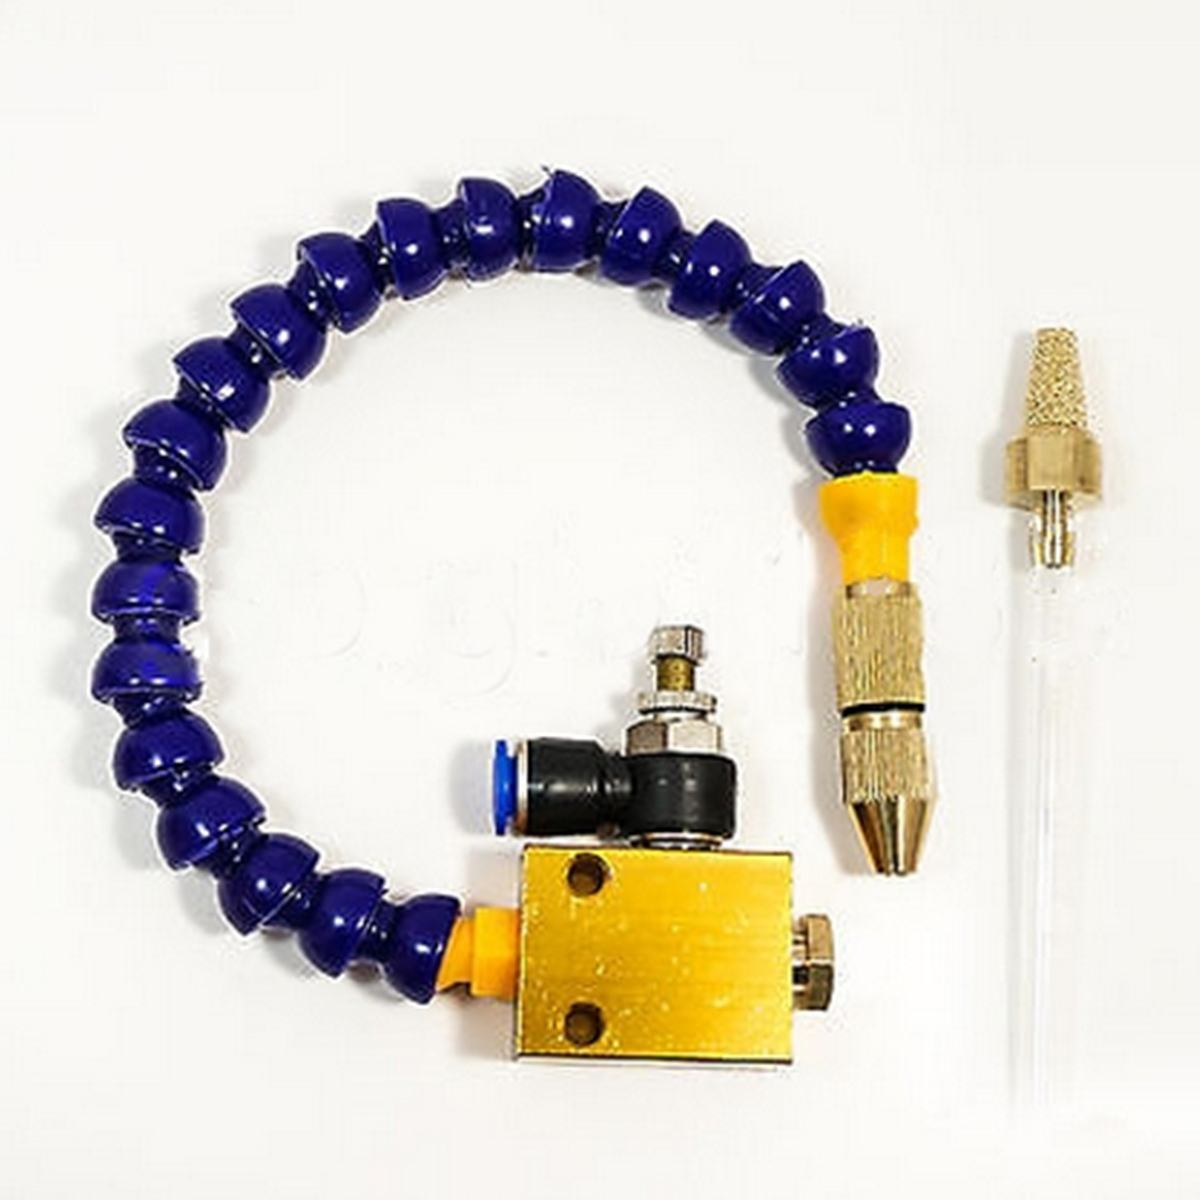 Mist Coolant Lubrication Spray System For 8mm Air Pipe Lathe Mill Drill CNC